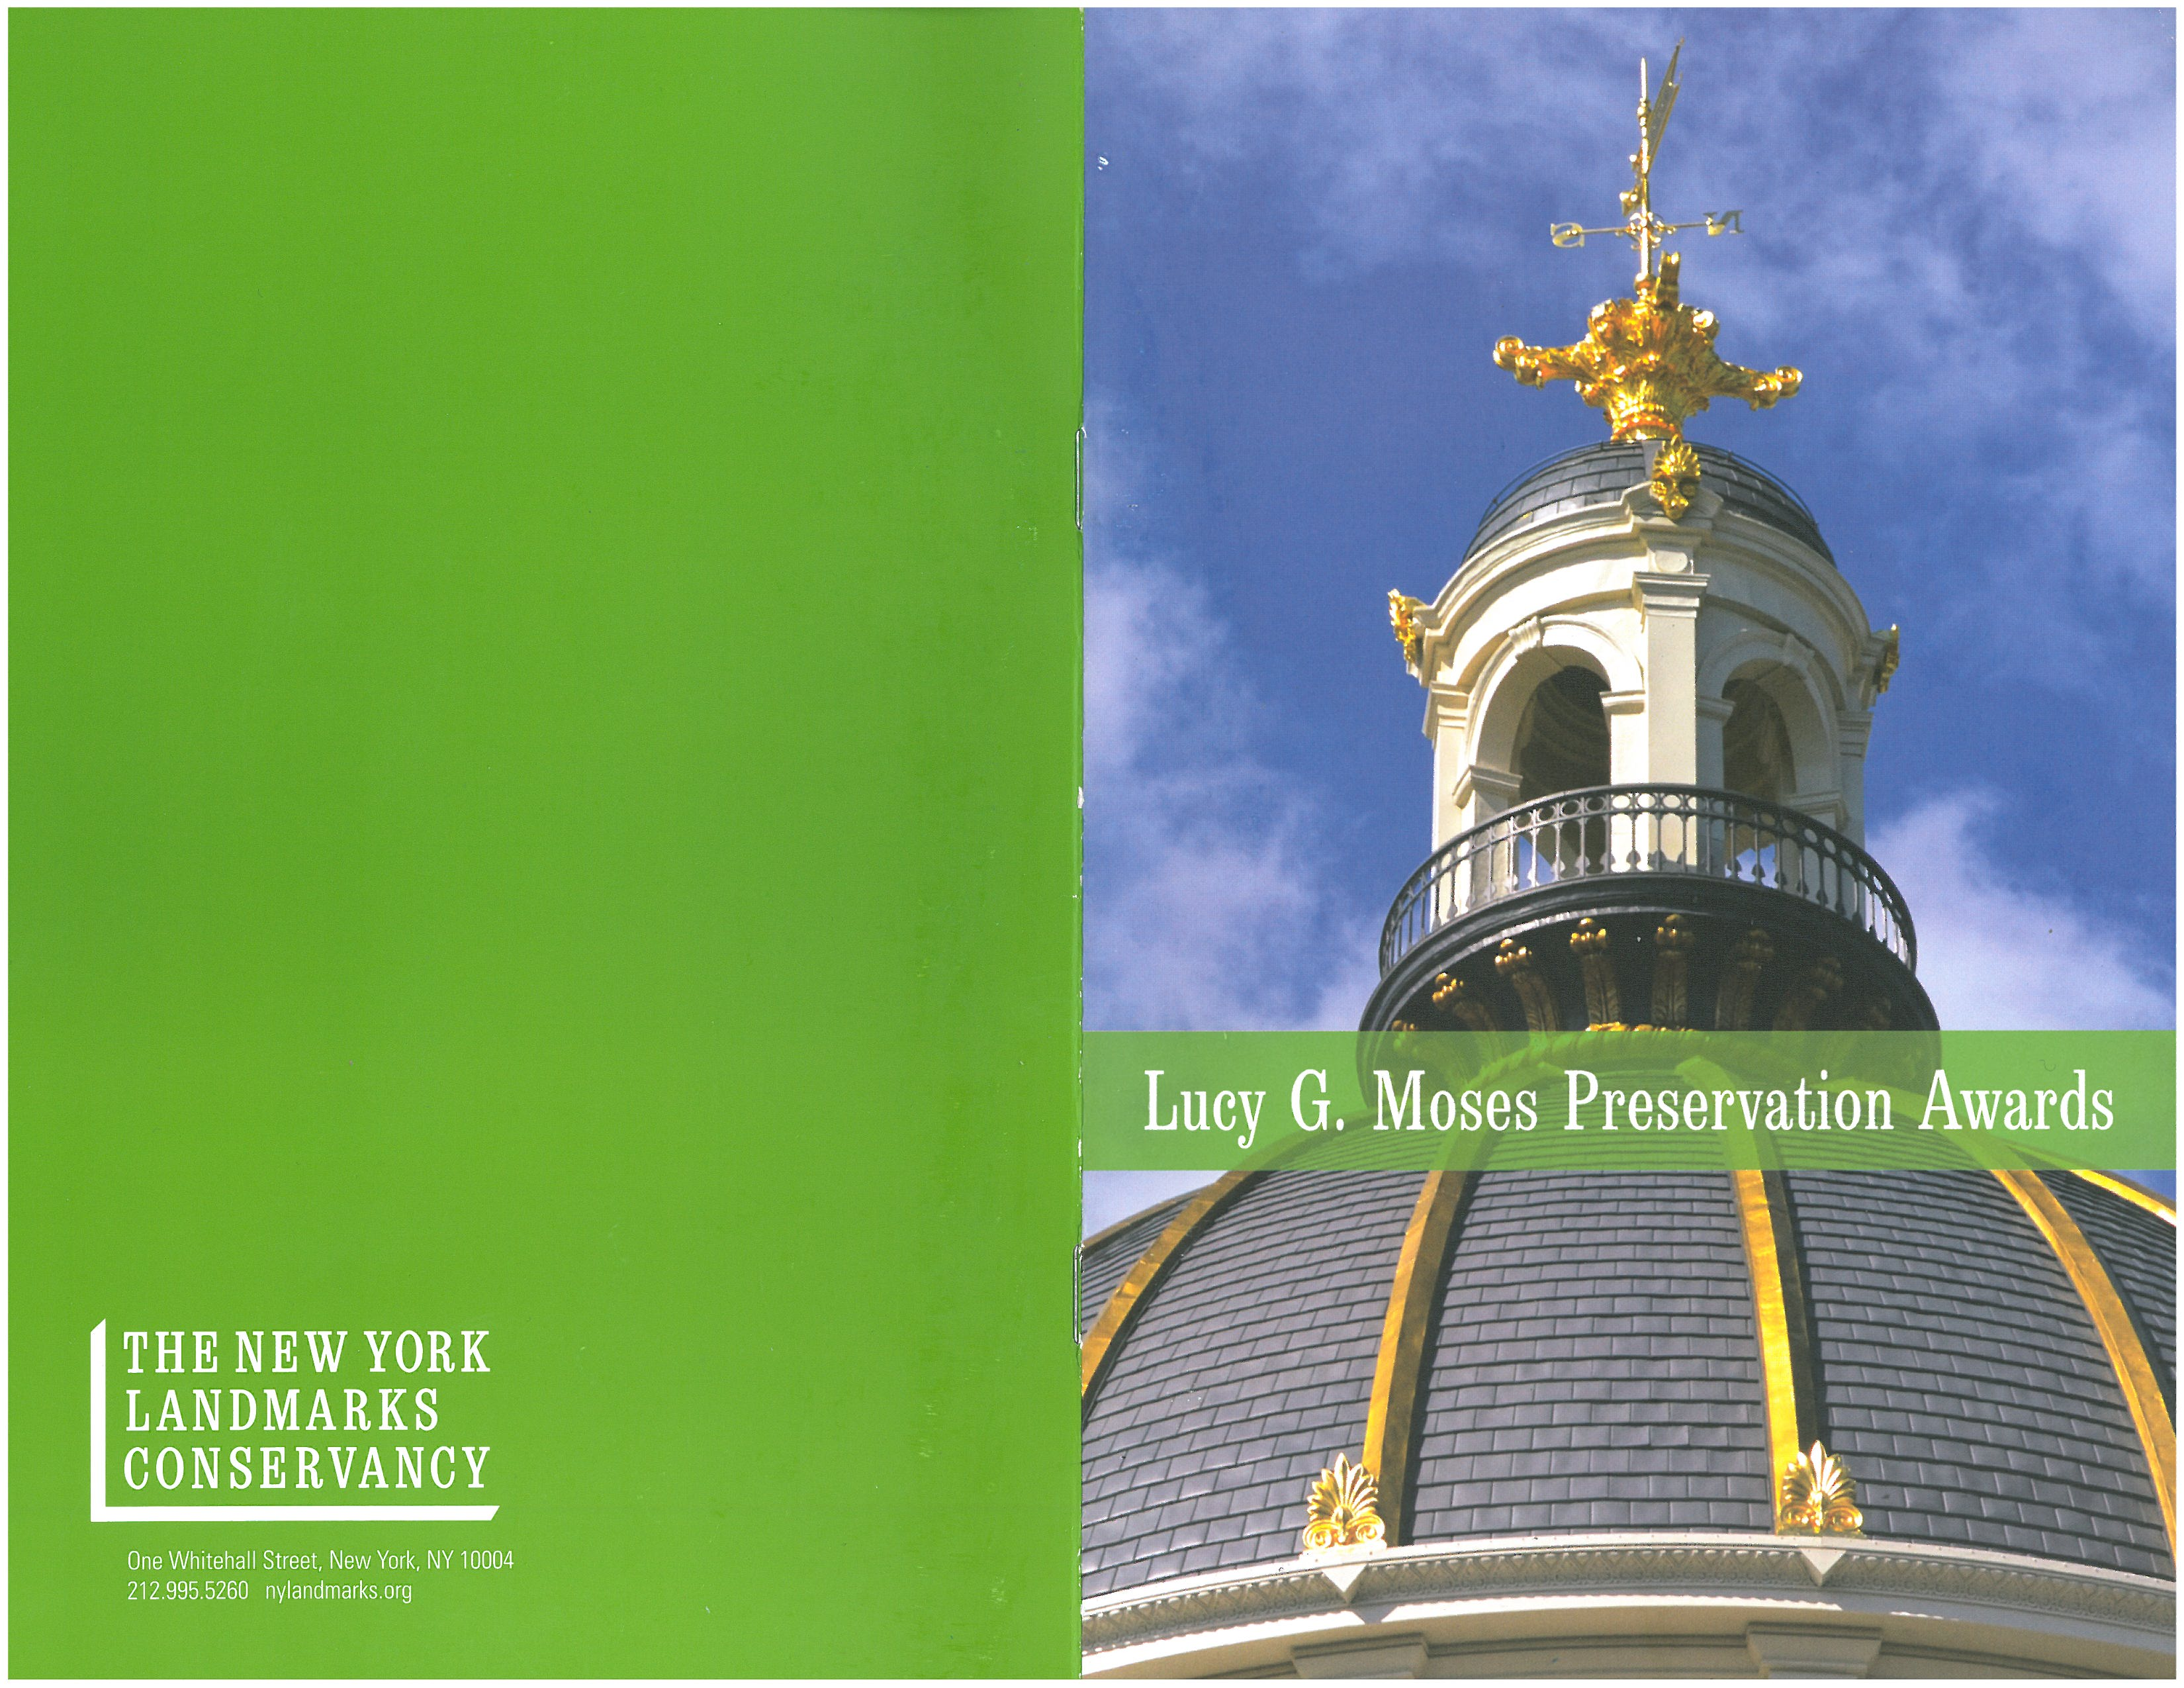 vidaris-project-pier-a-in-battery-park-new-york-receives-a-lucy-g-moses-preservation-award-43_Page_1